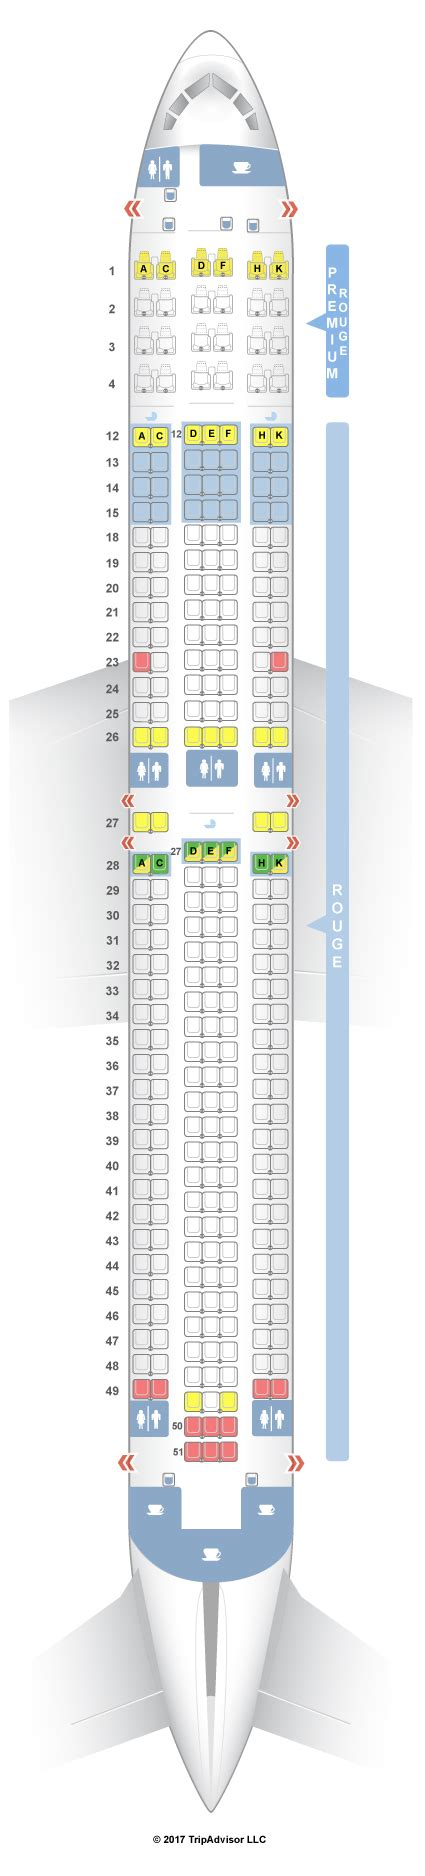 plan siege boeing 777 300er seatguru seat map air canada boeing 767 300er 763